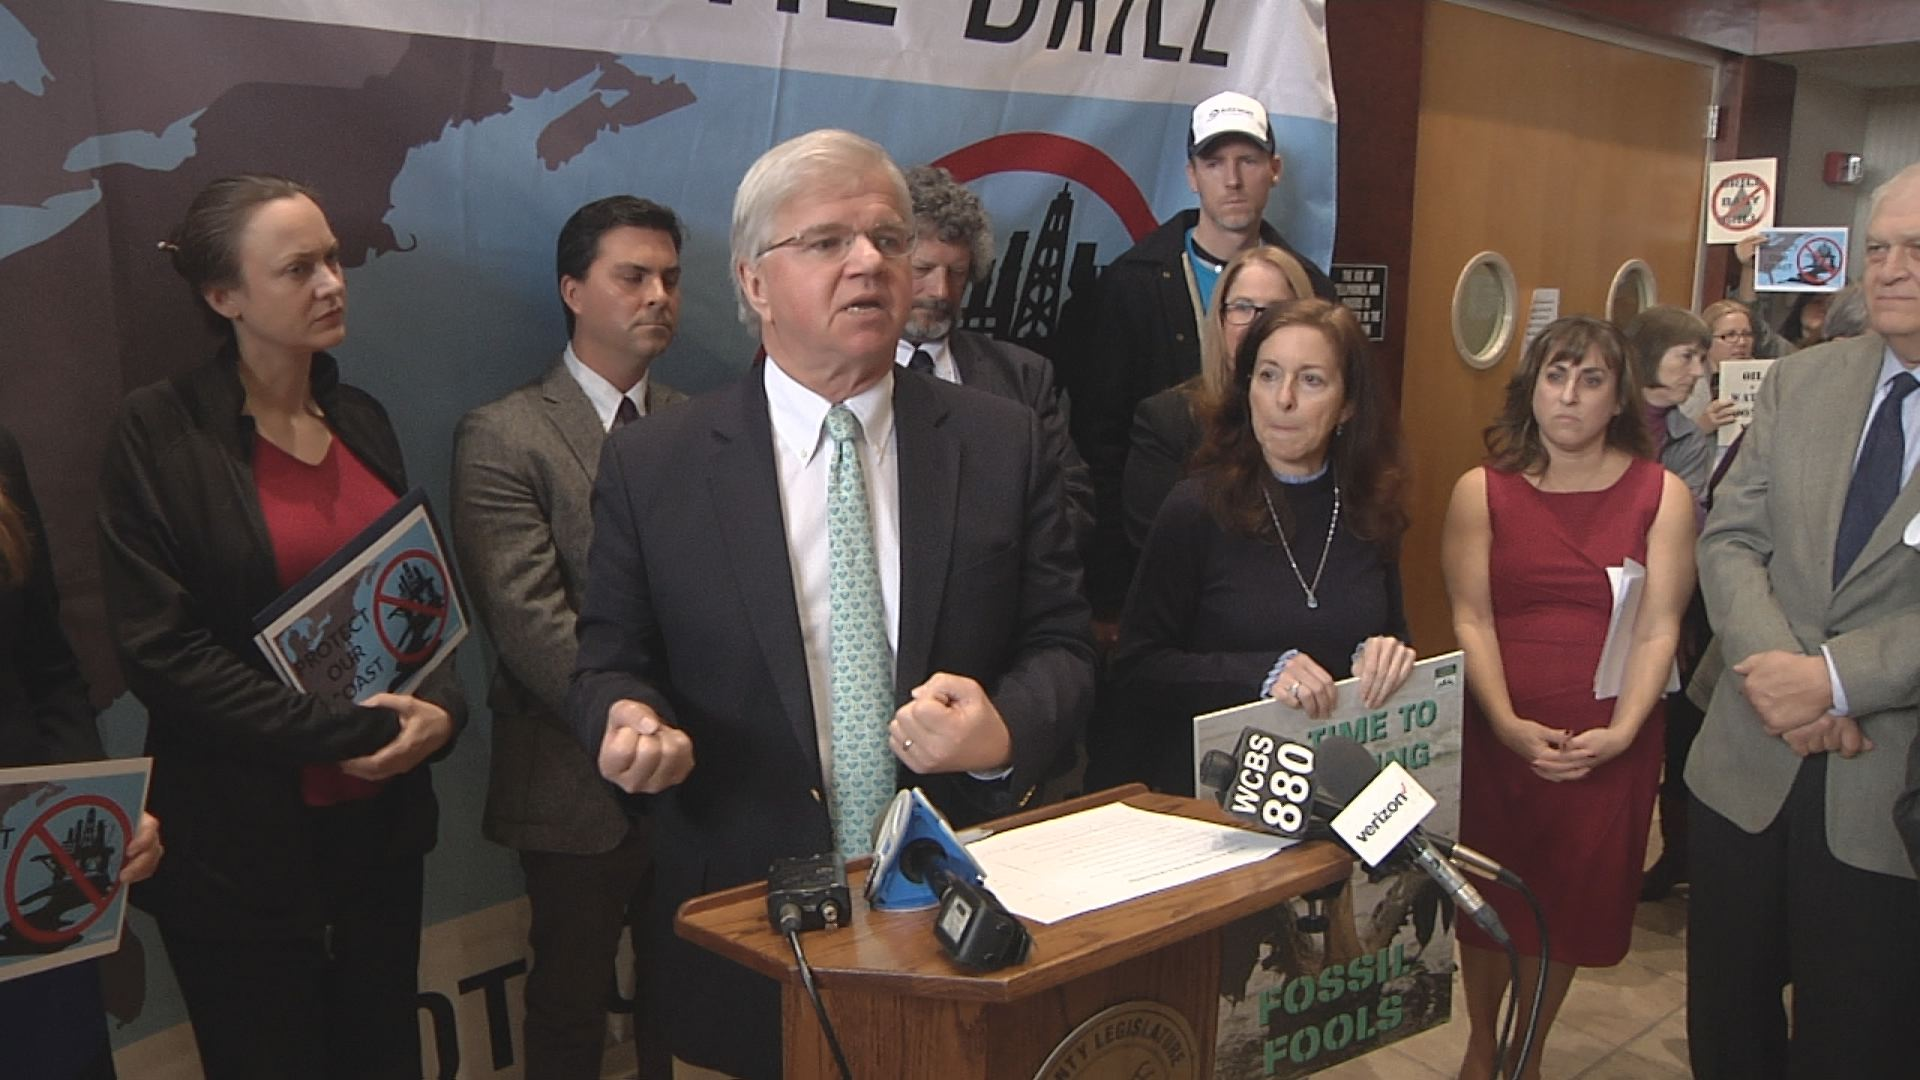 Assemblyman Thiele Speaks on His Opposition to Offshore Drilling